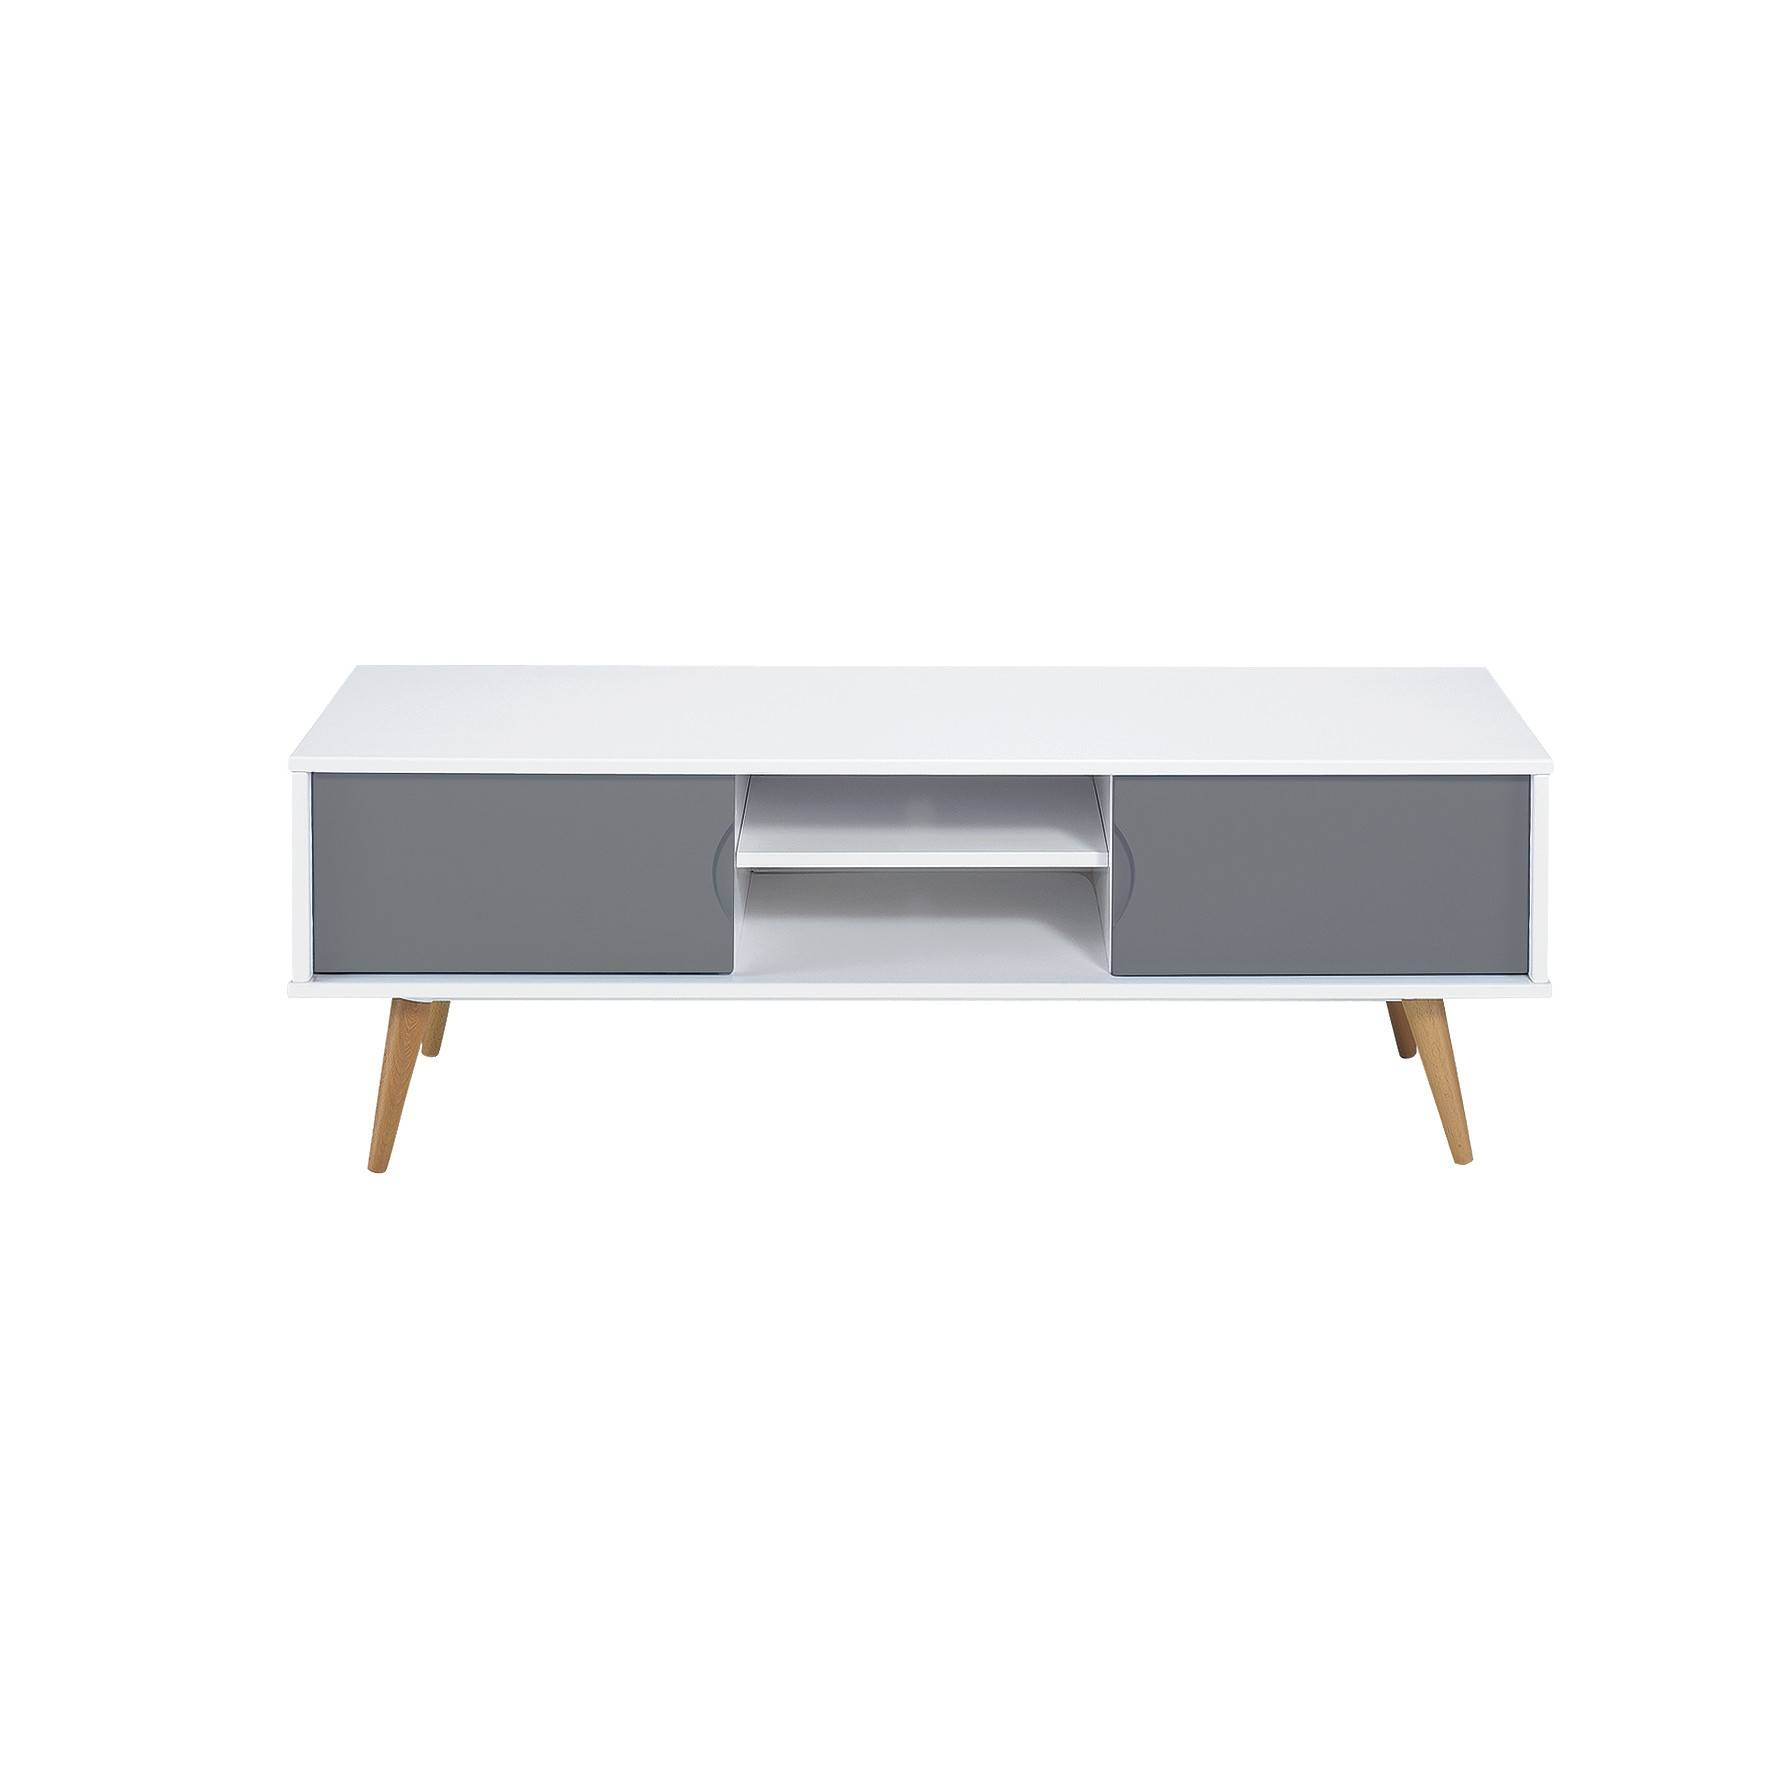 2 Drawer Low Vasby Tv Unit | Temple & Webster pertaining to Low Tv Units (Image 1 of 15)